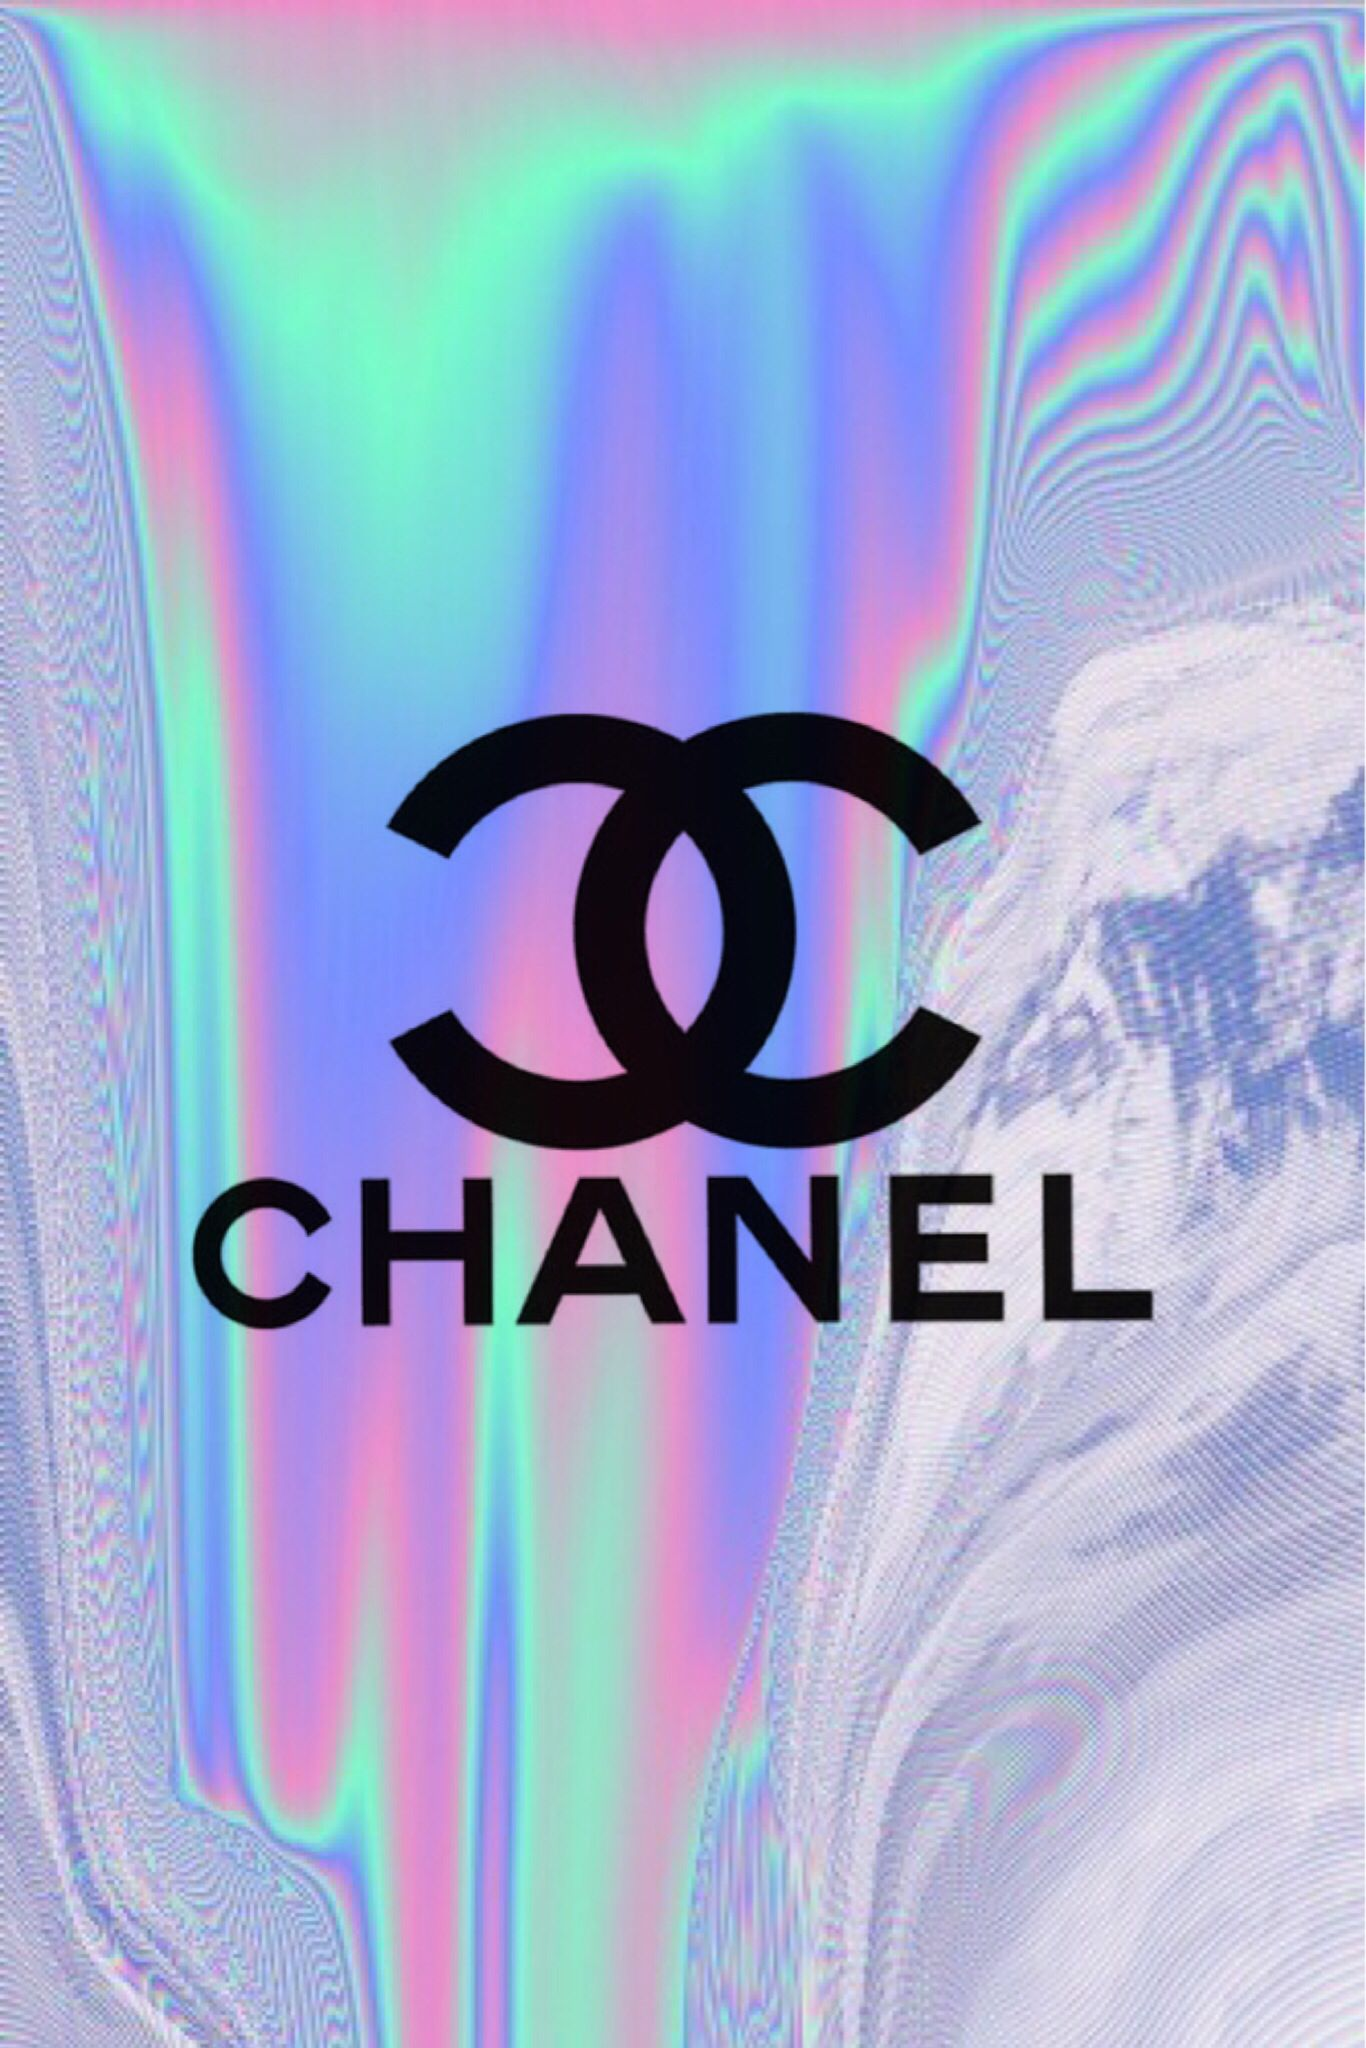 V iphone wallpaper tumblr - Chanel Holographic Iphone Wallpaper